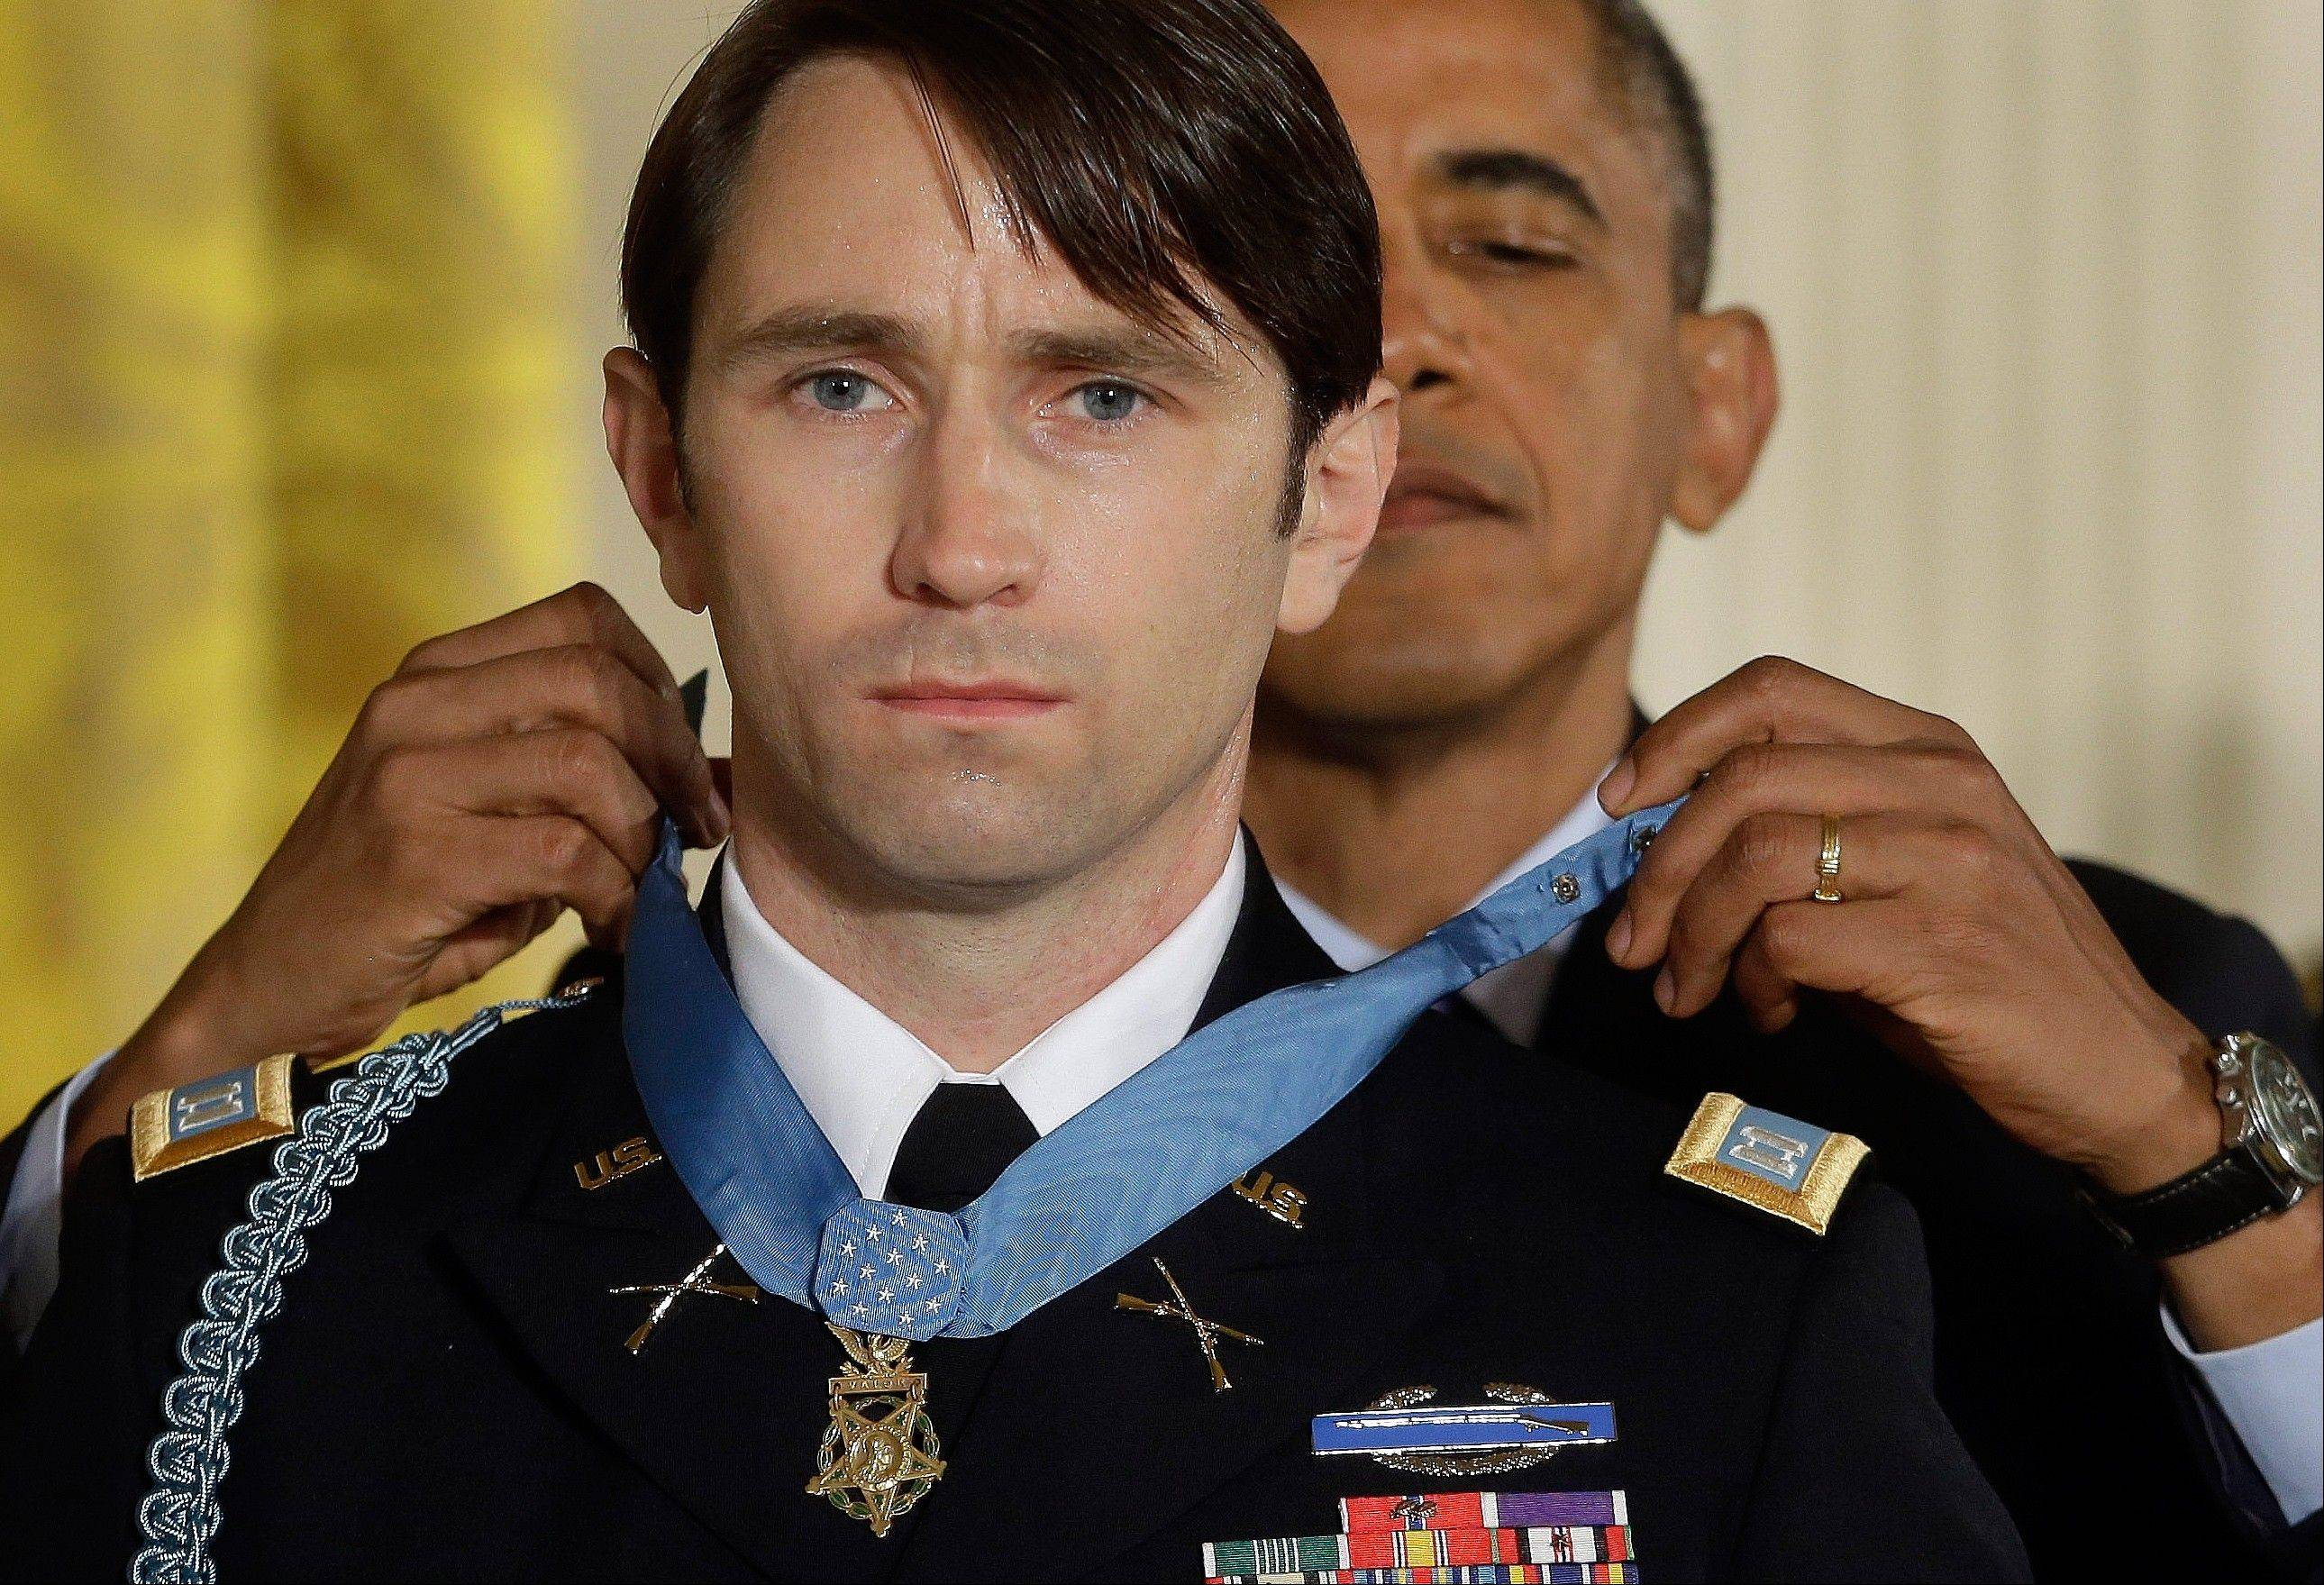 President Barack Obama awards the Medal of Honor to former Army Capt. William D. Swenson of Seattle during a ceremony at the White House Tuesday. Swenson was awarded for his actions in a lengthy battle against Taliban insurgents in Afghanistan in 2009, which claimed the lives of five Americans, 10 Afghan army troops and an interpreter.